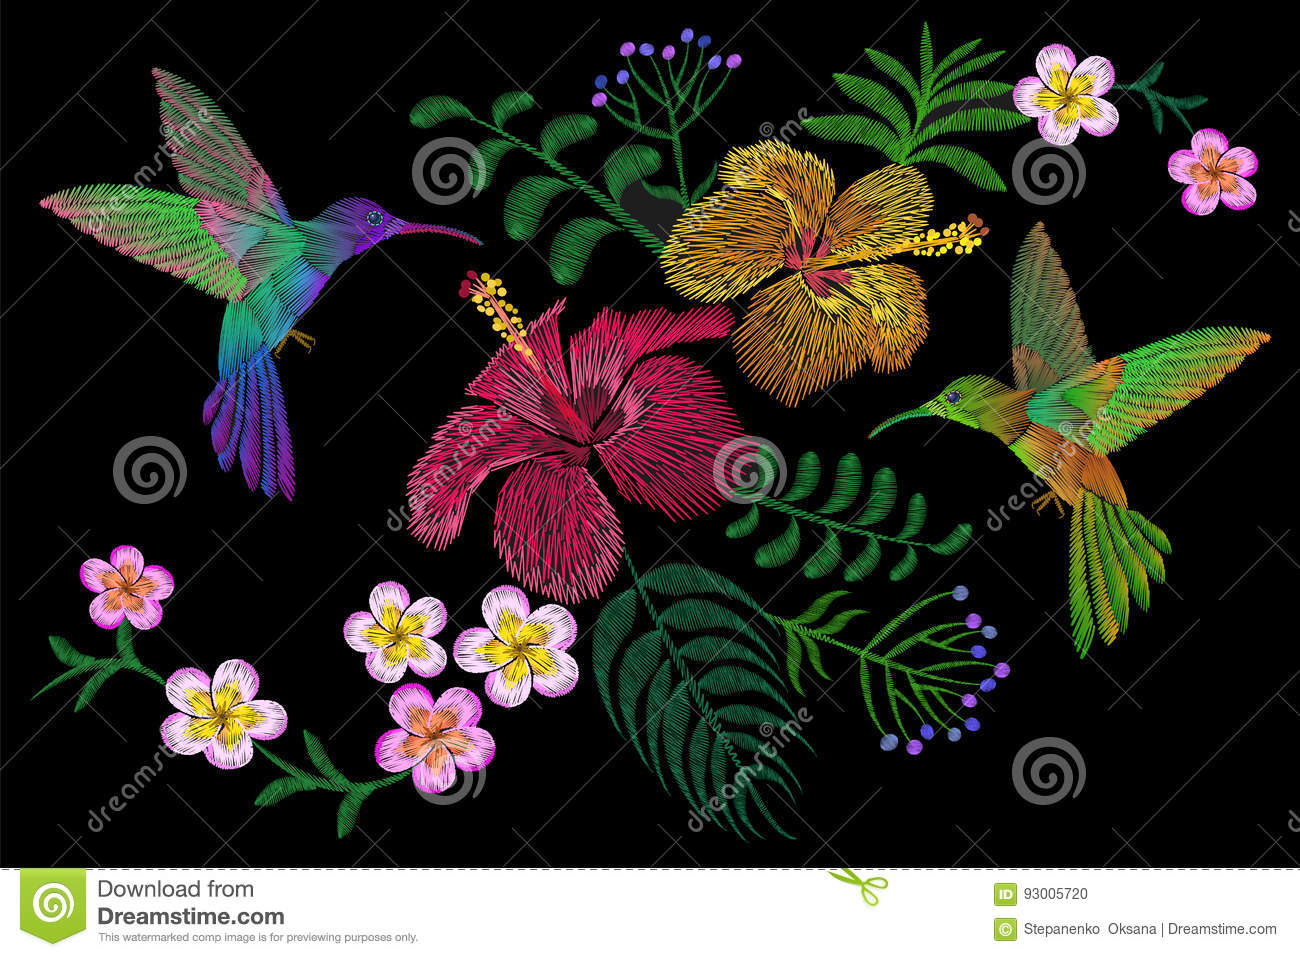 Hummingbird around flower plumeria hibiscus exotic tropical summer blossom. Embroidery fashion patch decoration textile